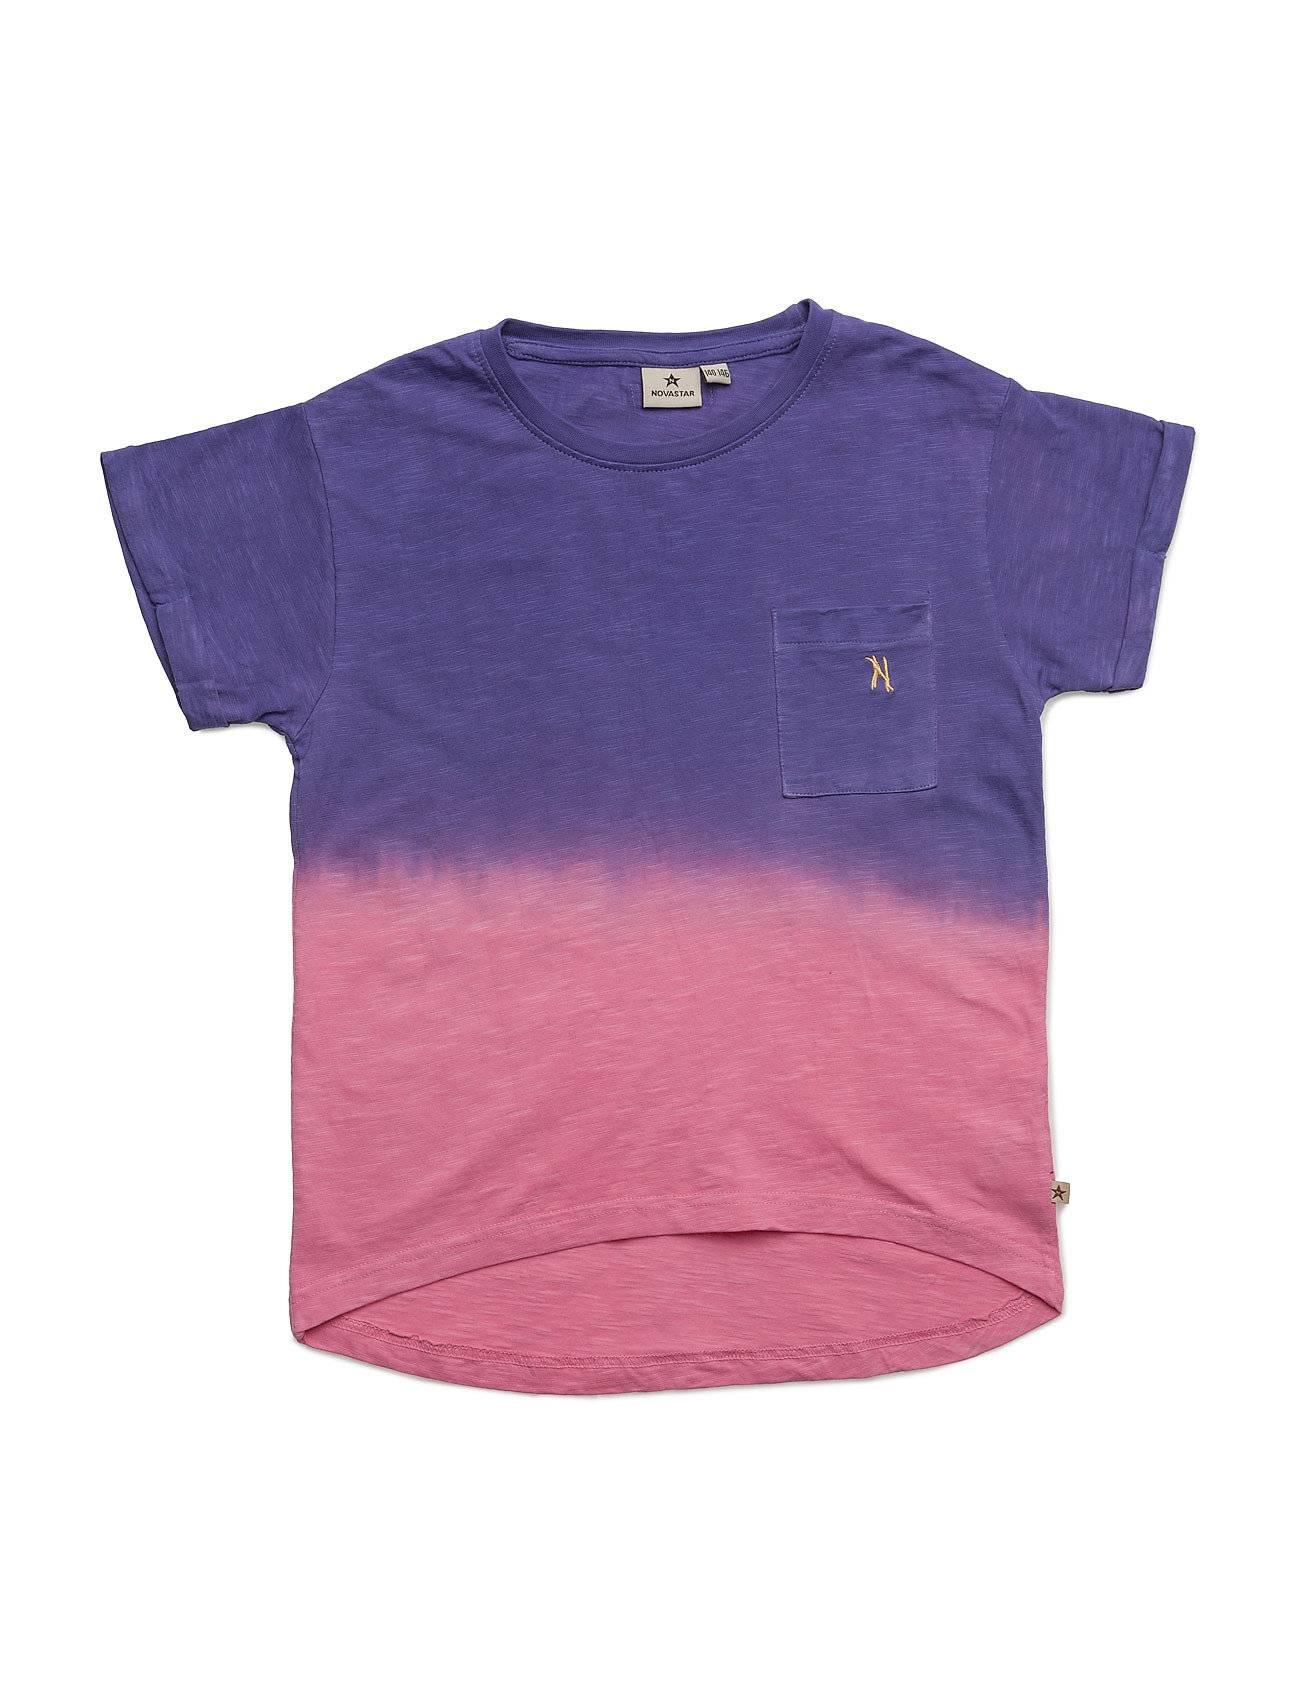 NOVA STAR Dip Dyed Purple T